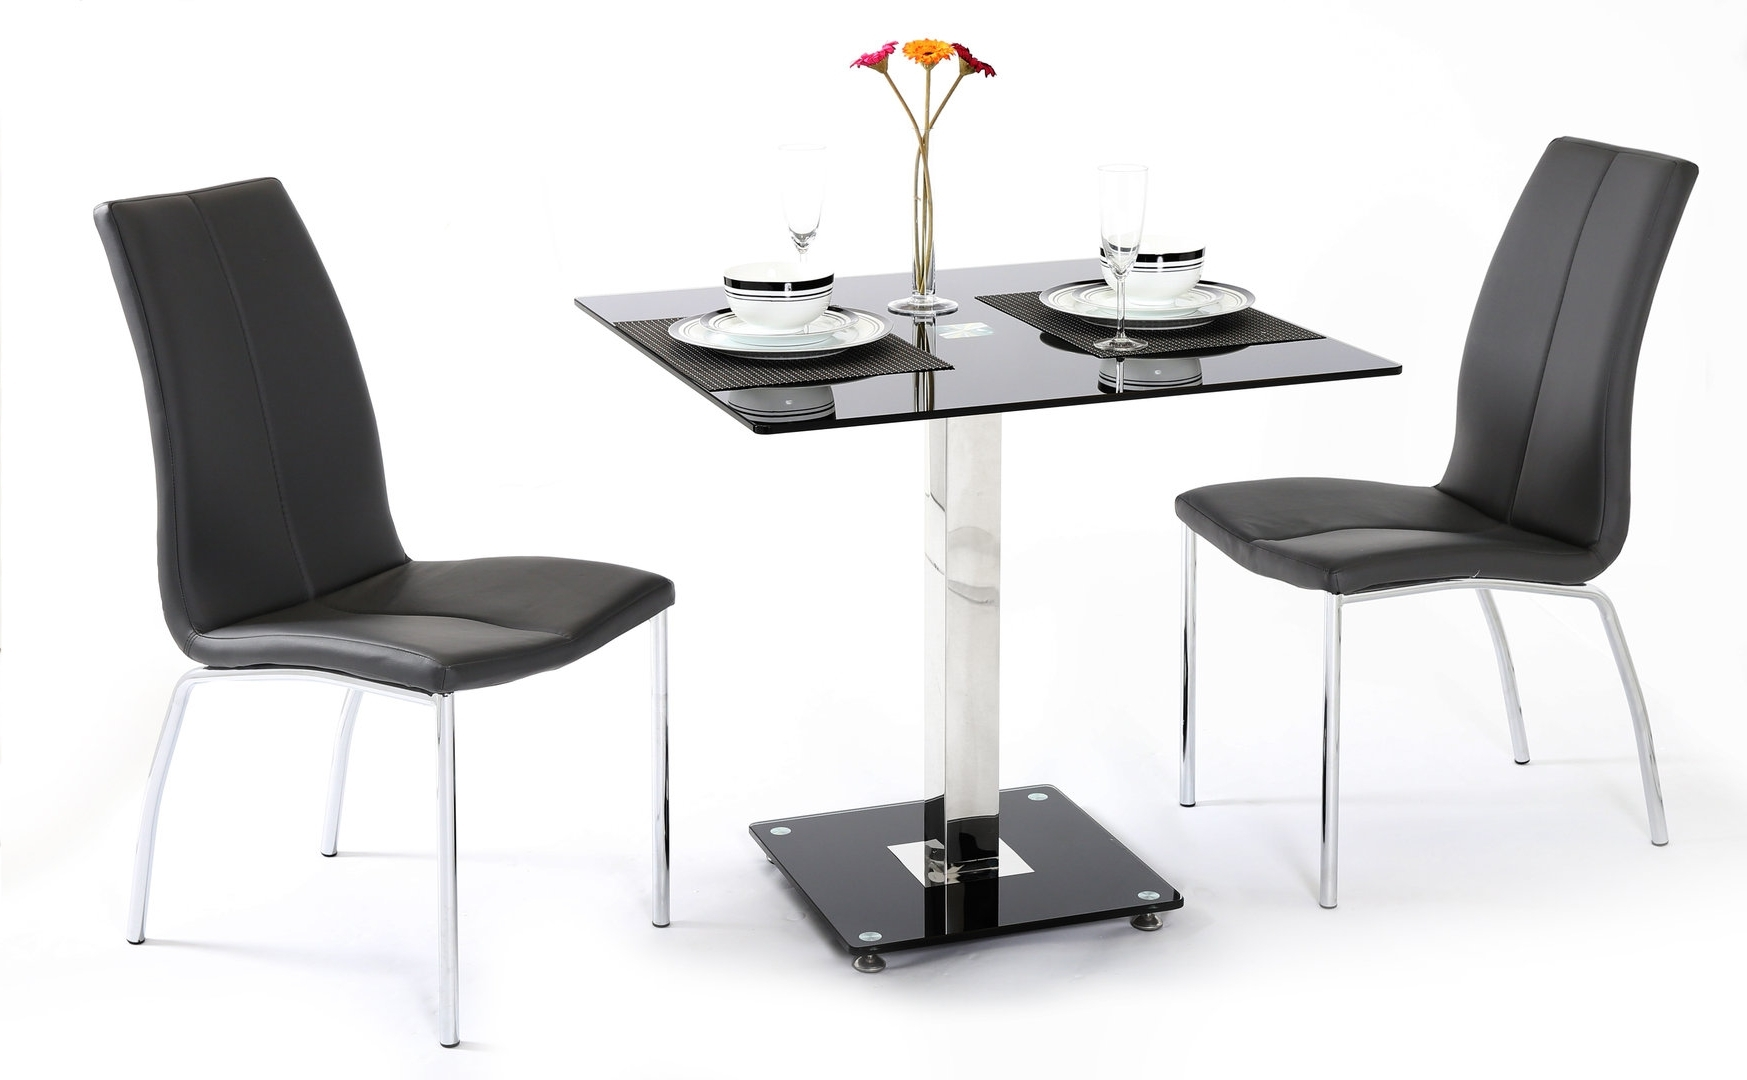 Well Known Black Glass Dining Table And 2 Chairs – Homegenies With Regard To Square Black Glass Dining Tables (View 22 of 25)